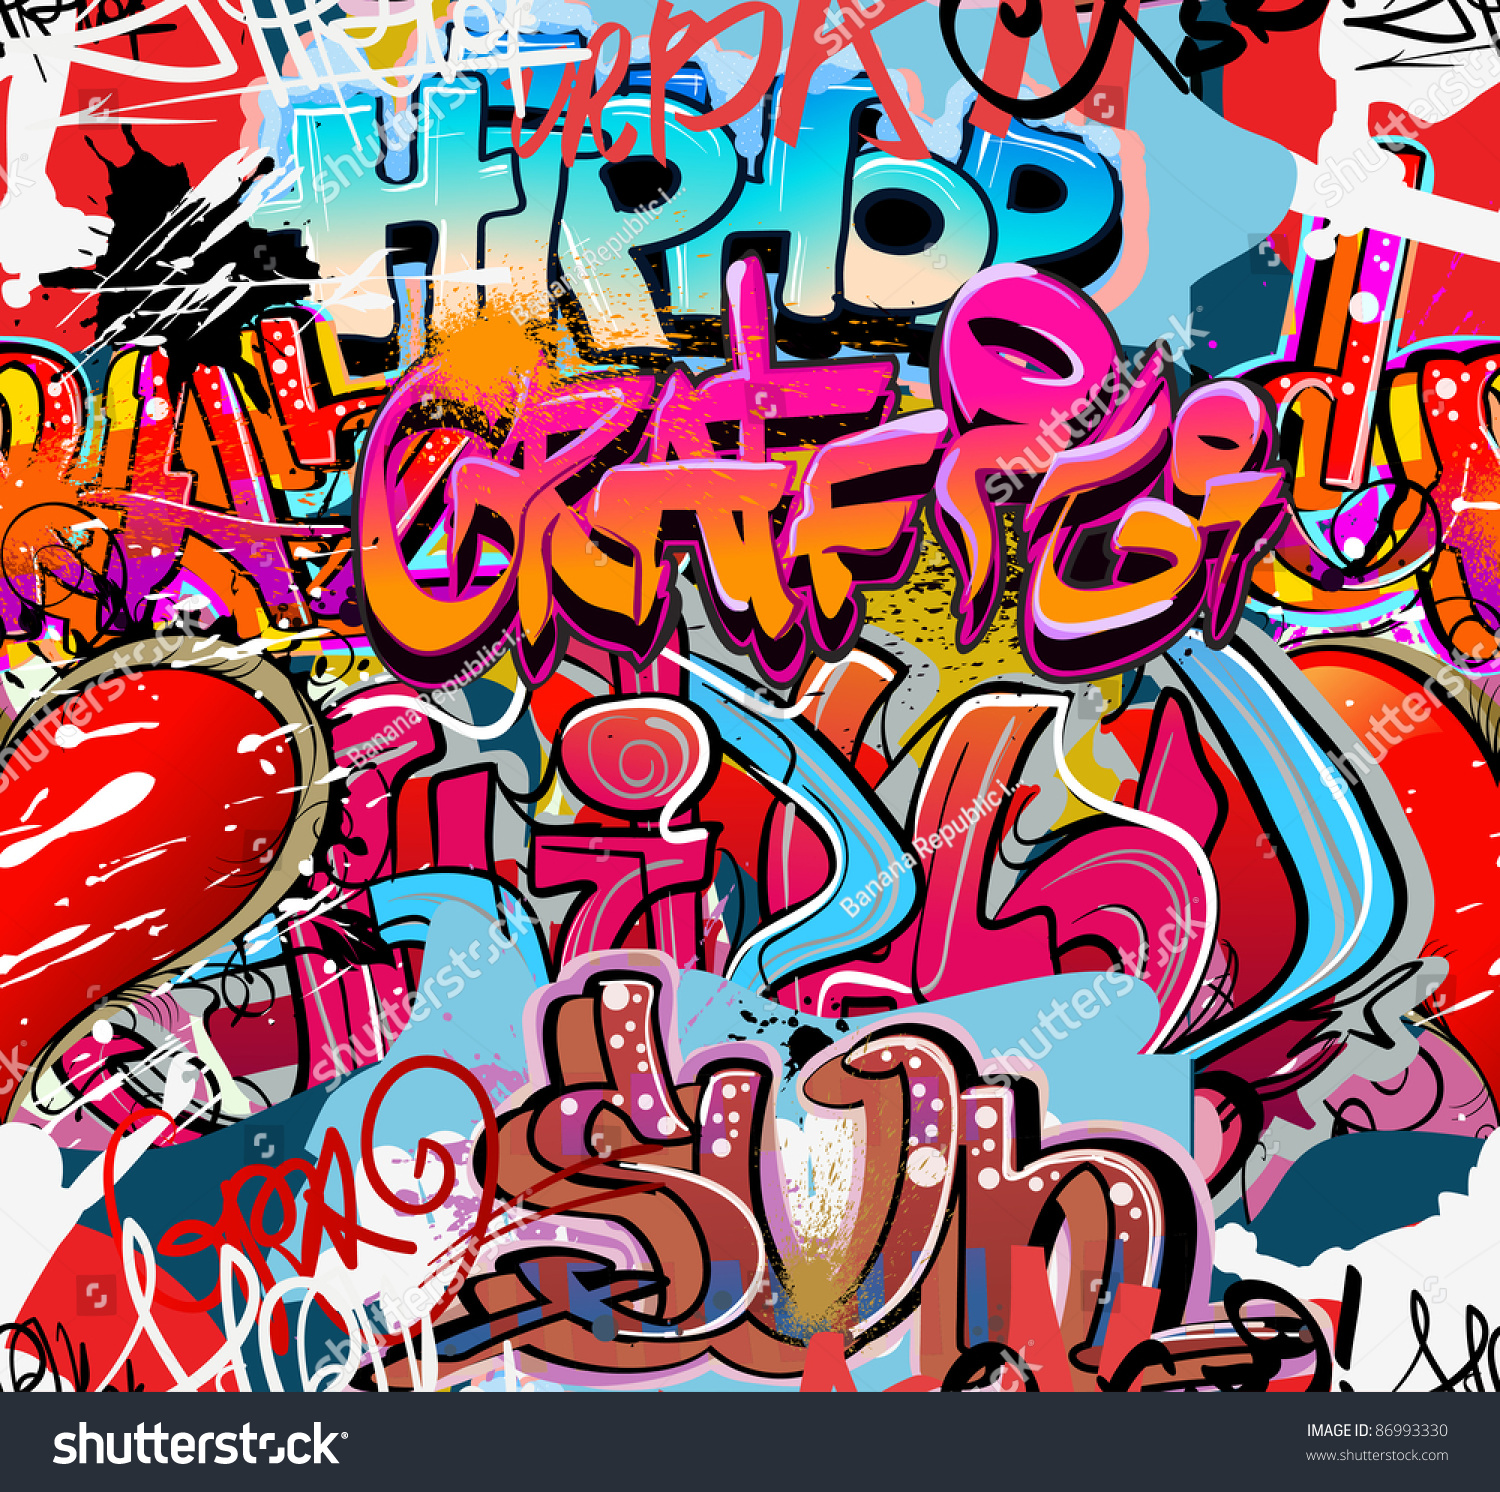 Grafitti wall background - Graffiti Wall Urban Hip Hop Background